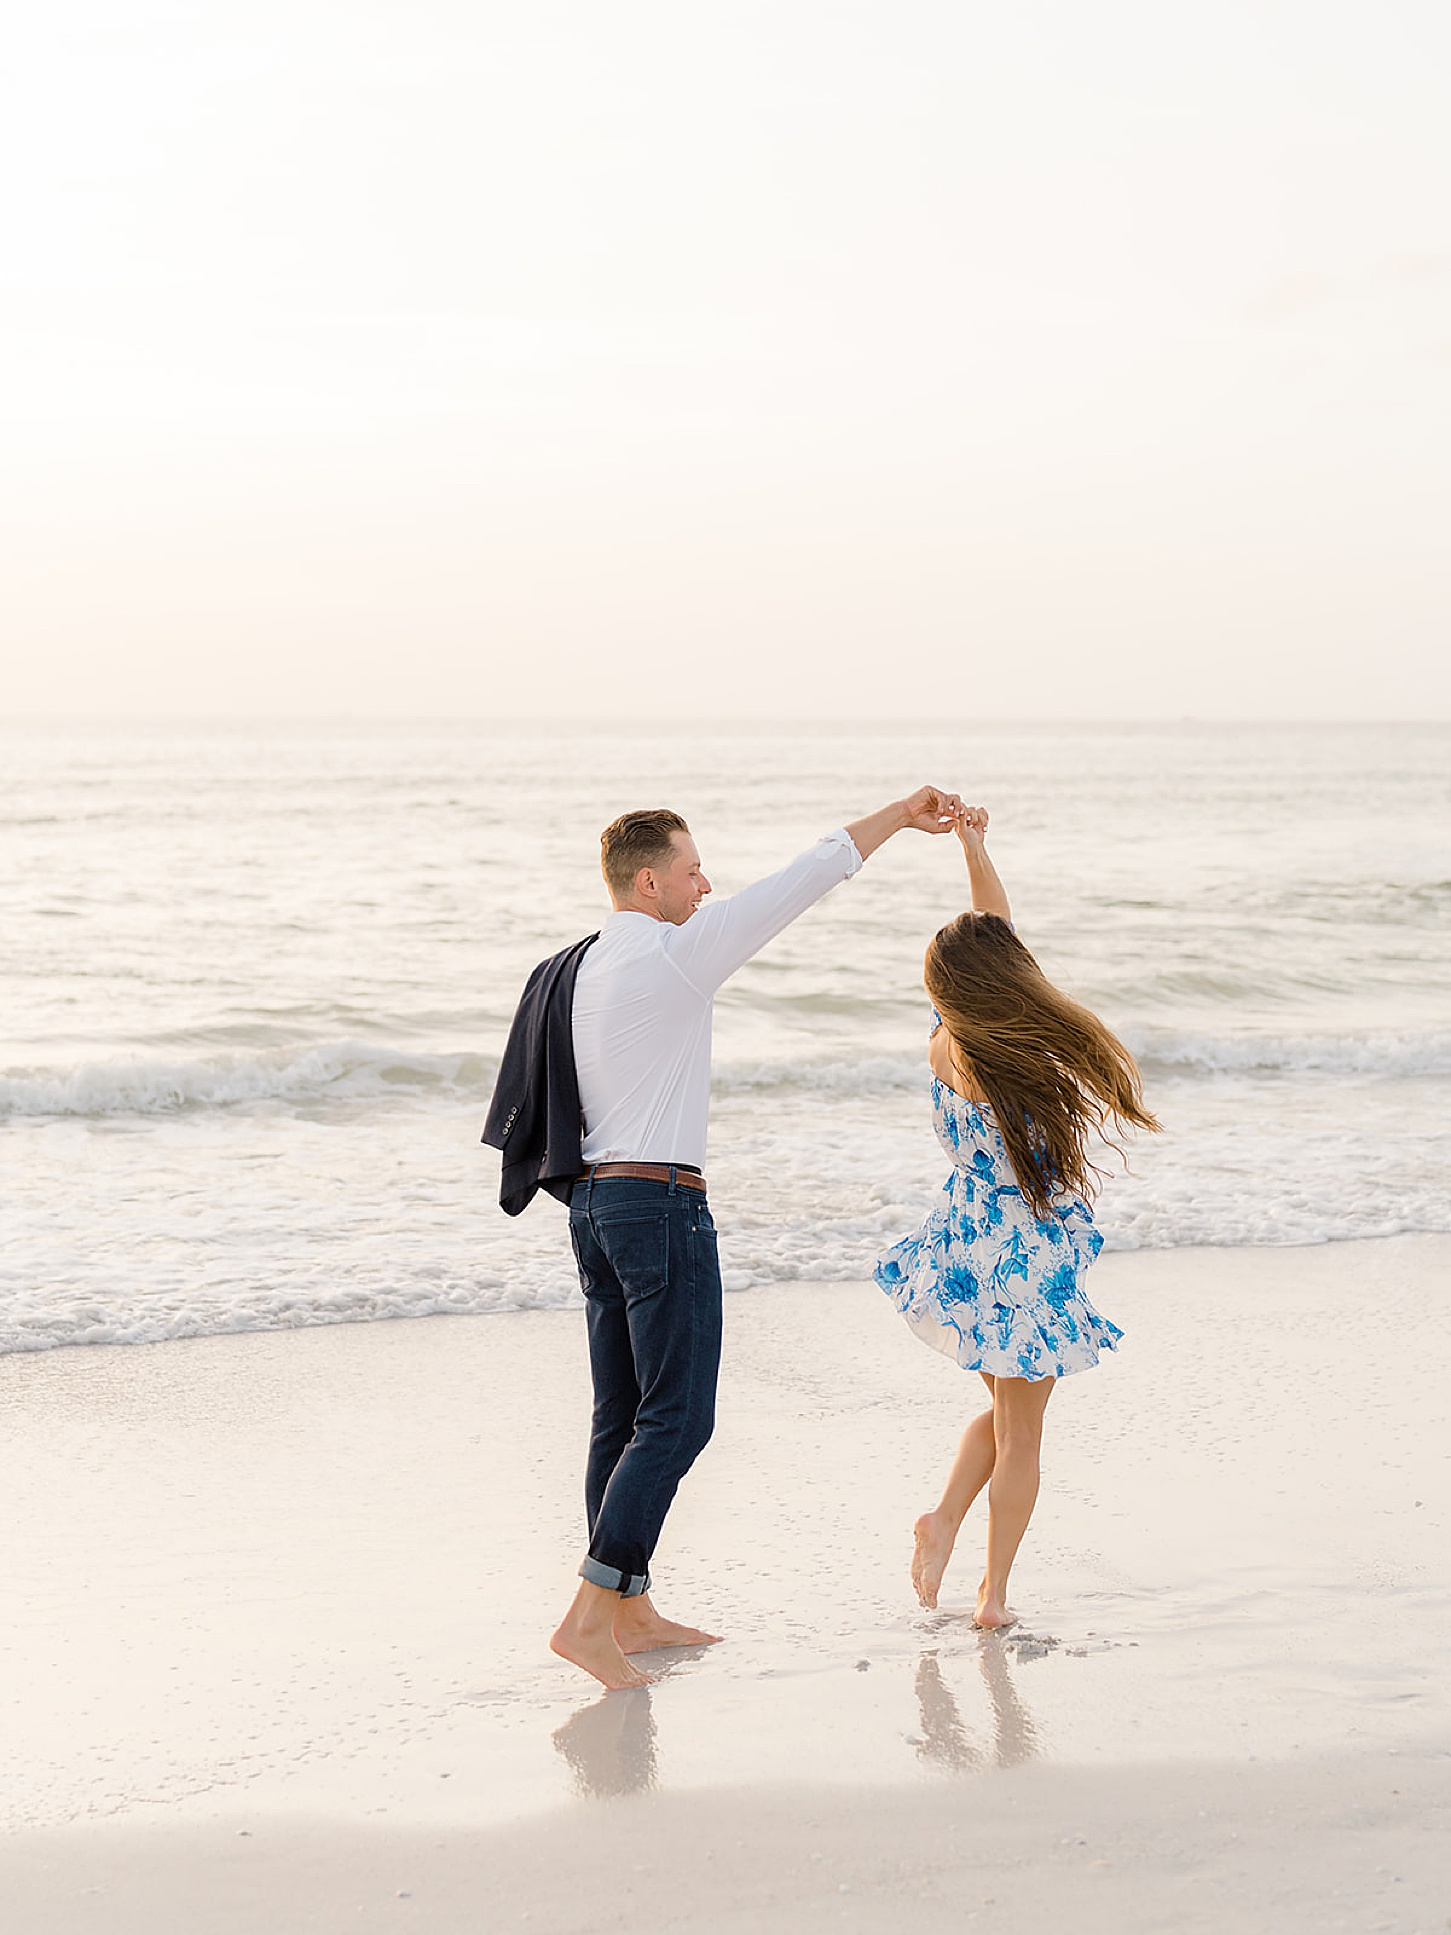 Palm Beach Florida Engagement Photography by Magdalena Studios Lyn and Paul 0029